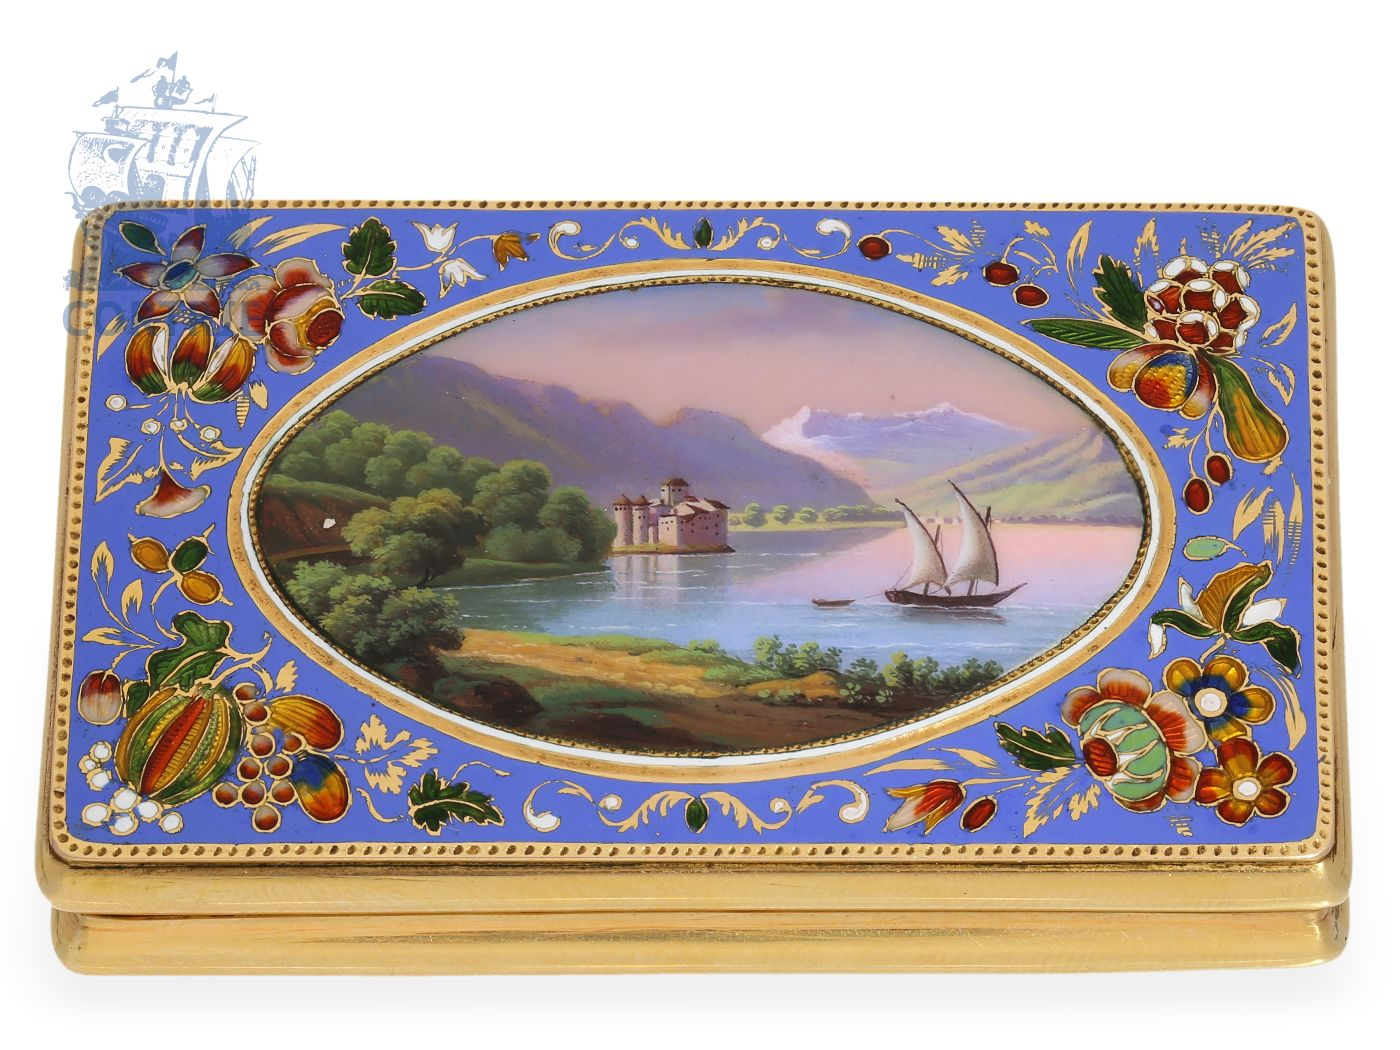 Box: exquisite gold/enamel snuff box, finest quality, probably Geneva ca. 1820-